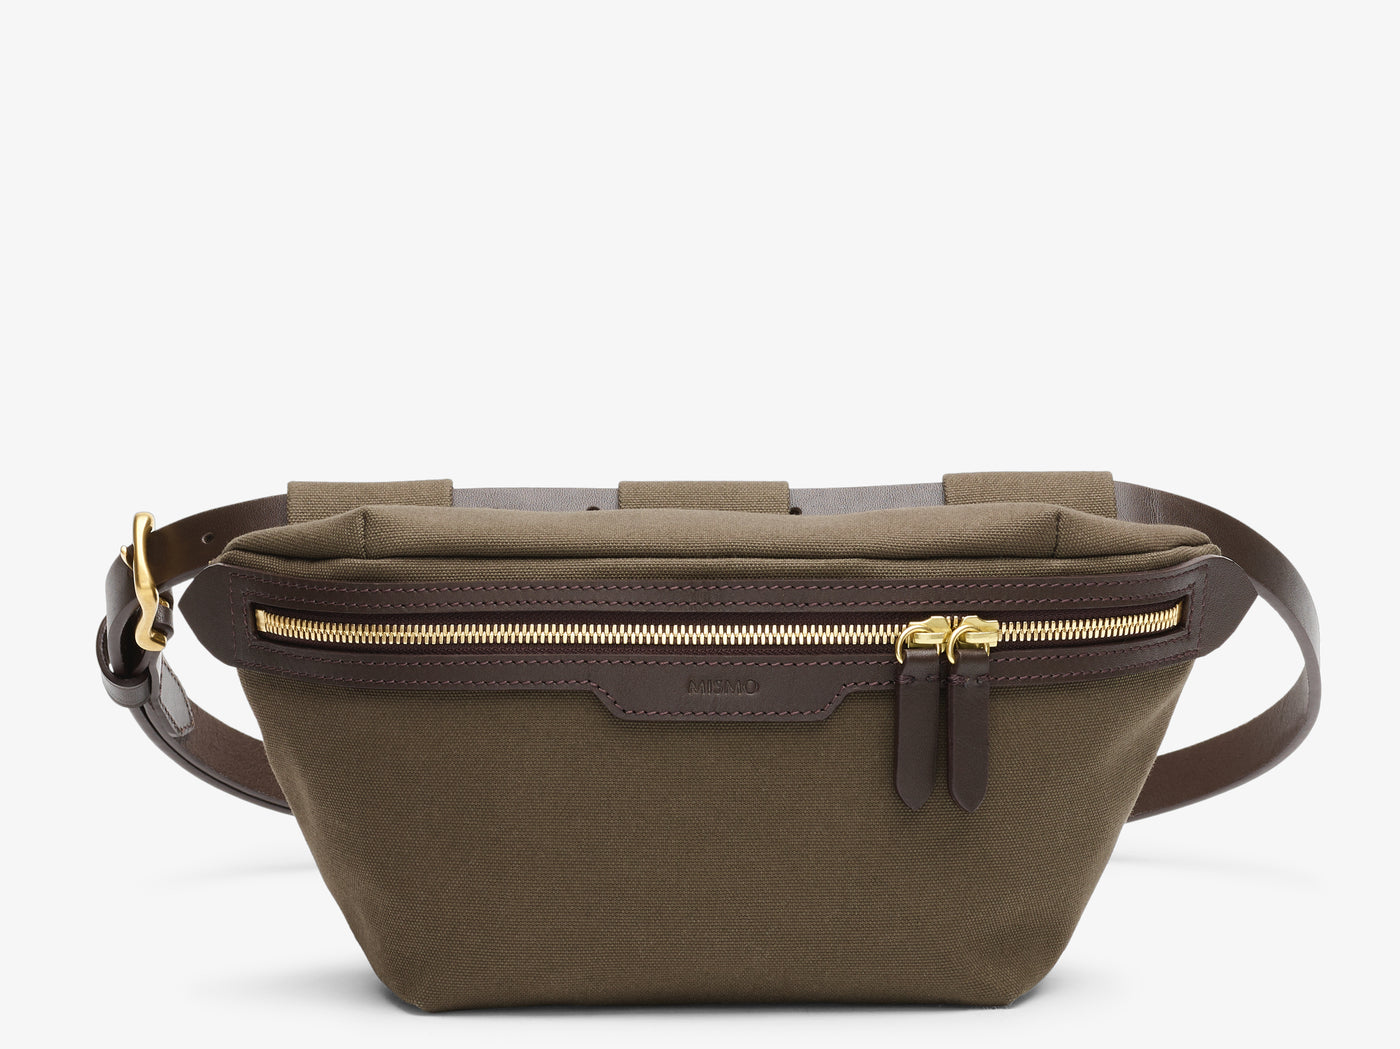 M/S Belt Bag - Army/Dark brown